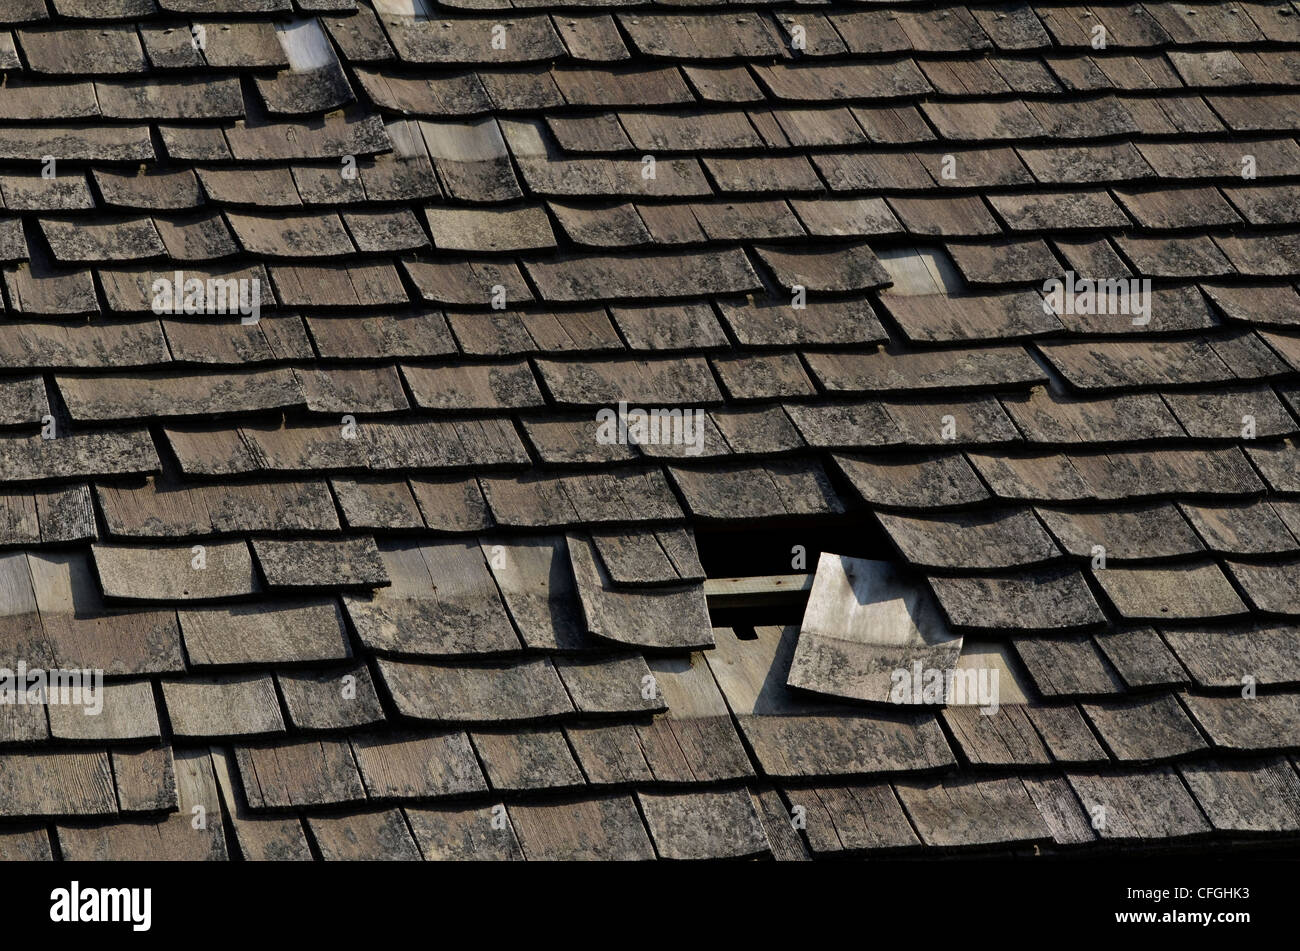 Decaying wood shingle roof. Damaged wood texture, wooden structure. Possible poor workmanship metaphor. - Stock Image